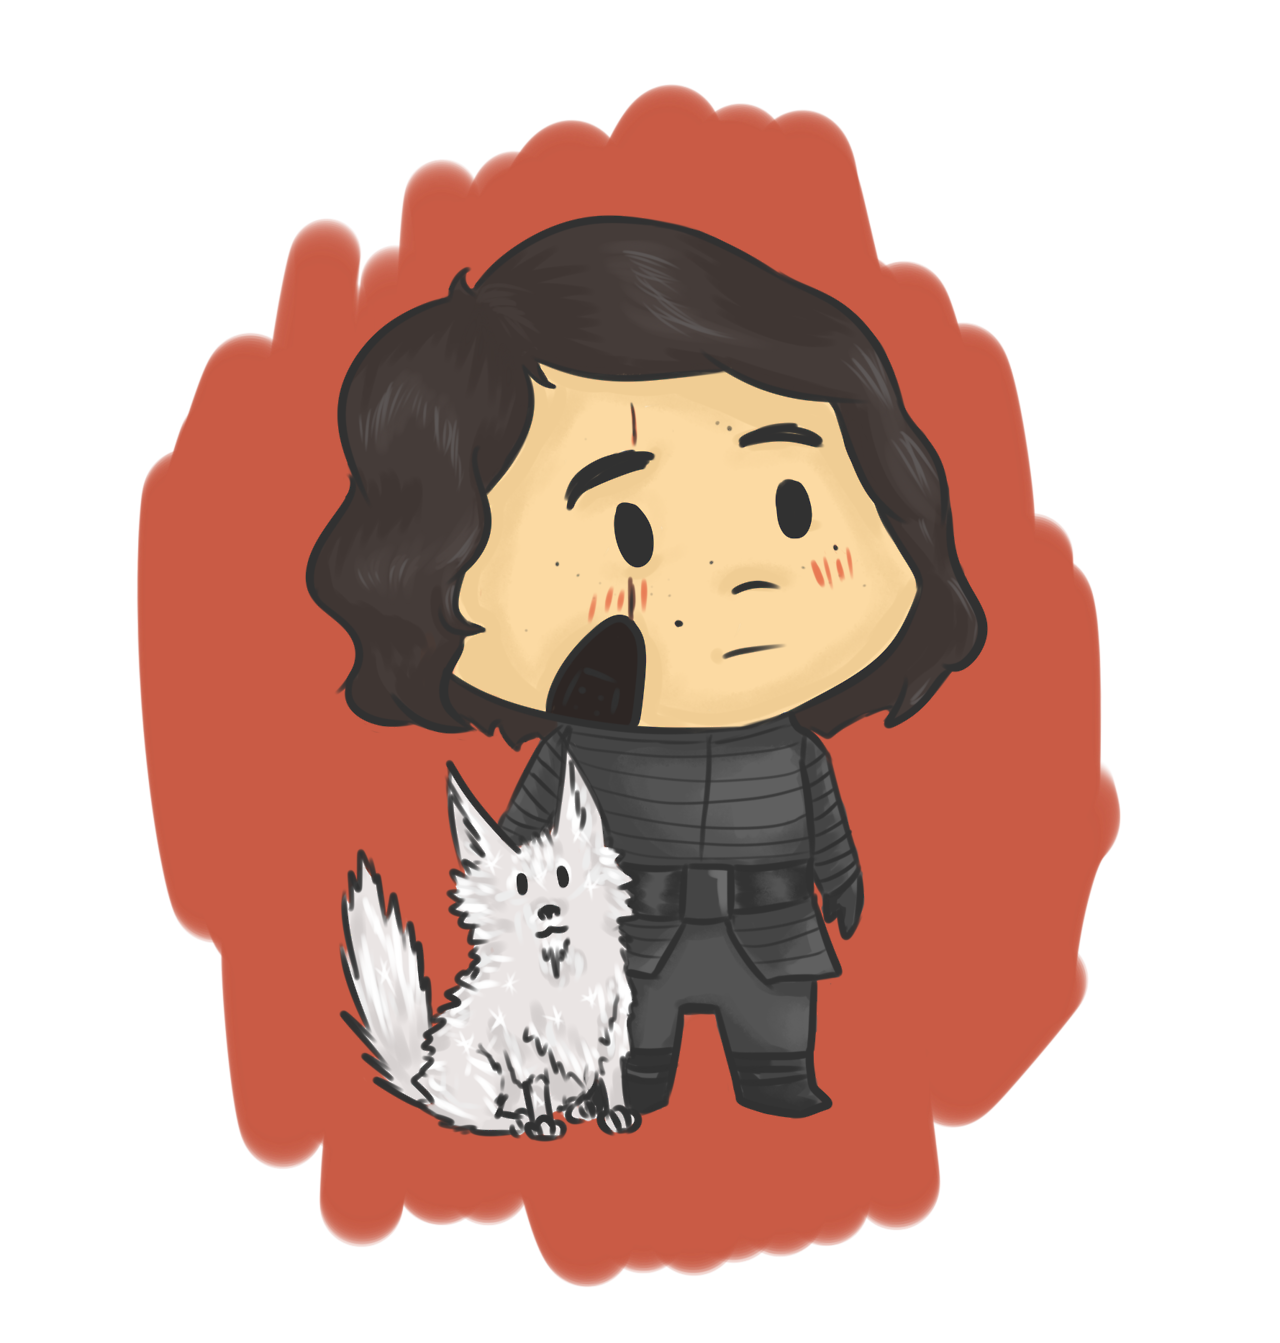 Star wars rei hair clipart vector free library Shamelessly draws kylo ren with all the cute star | Pinterest | Art ... vector free library